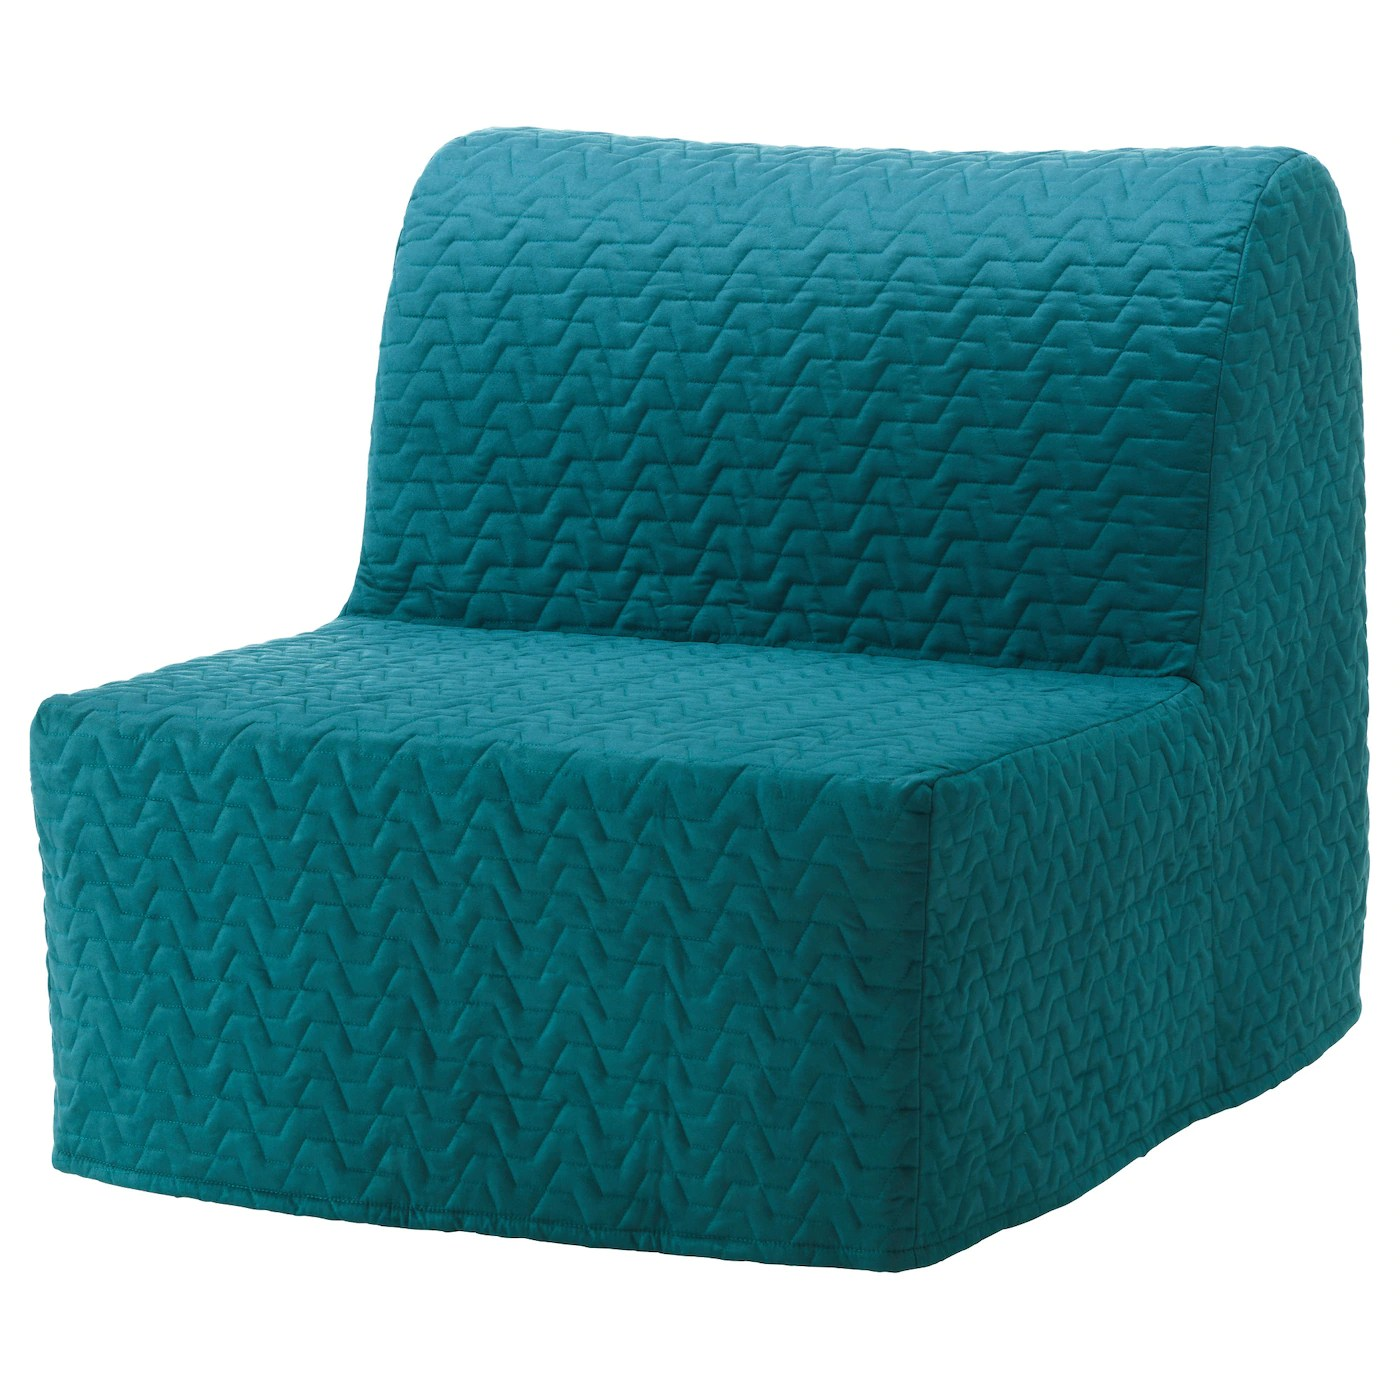 ikea bed chair covers macrame hanging lycksele cover vallarum turquoise